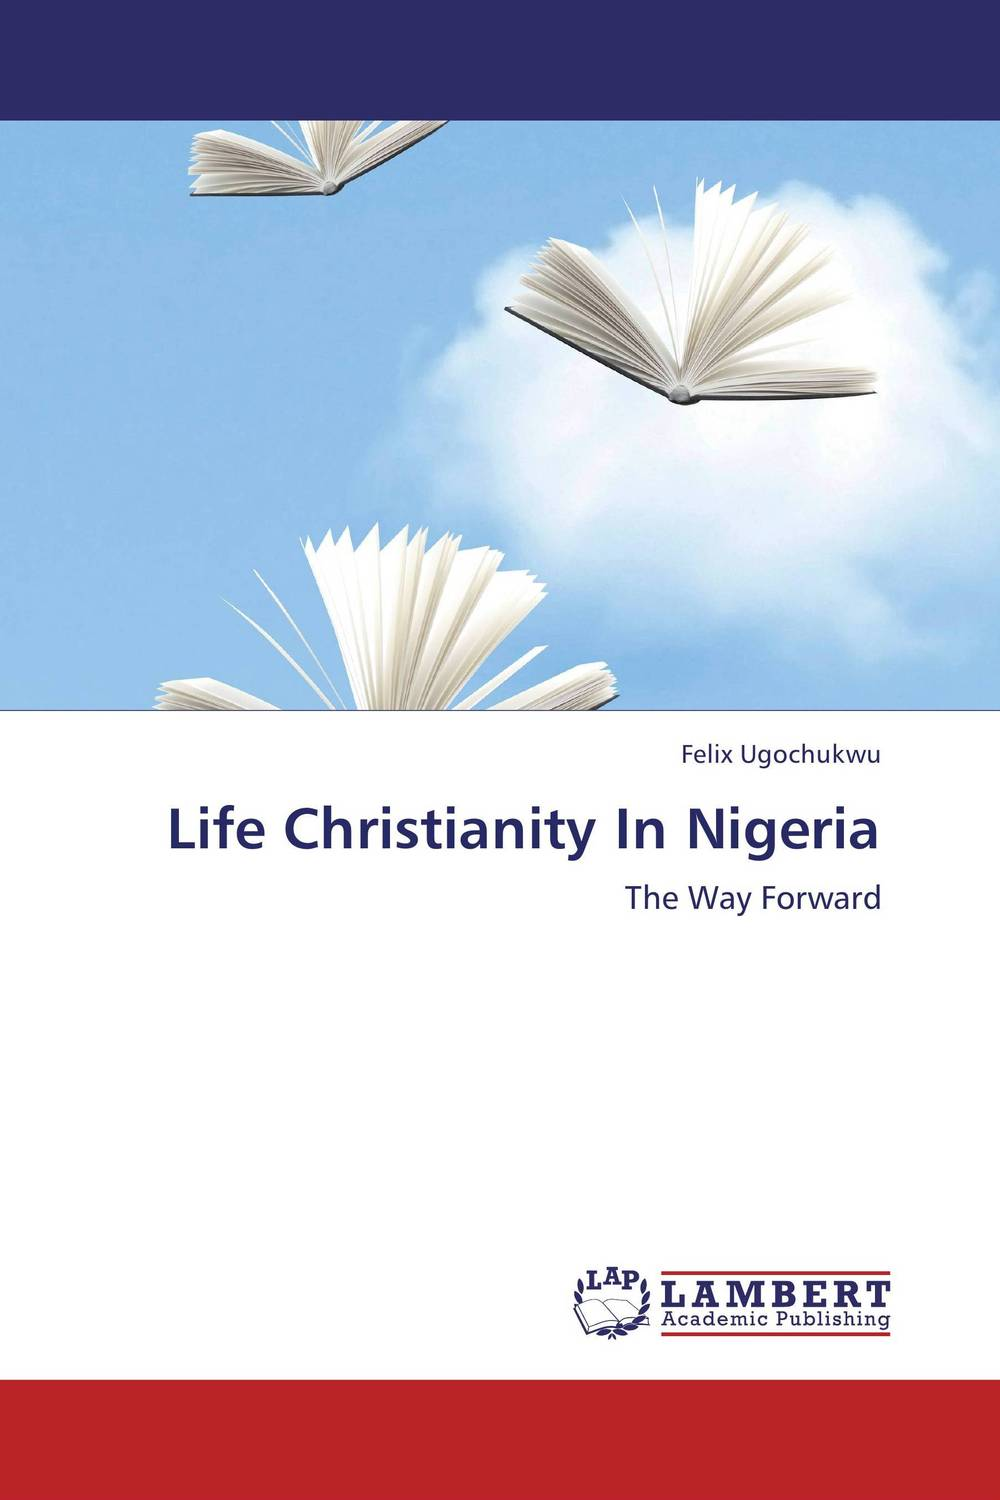 Life Christianity In Nigeria only a promise